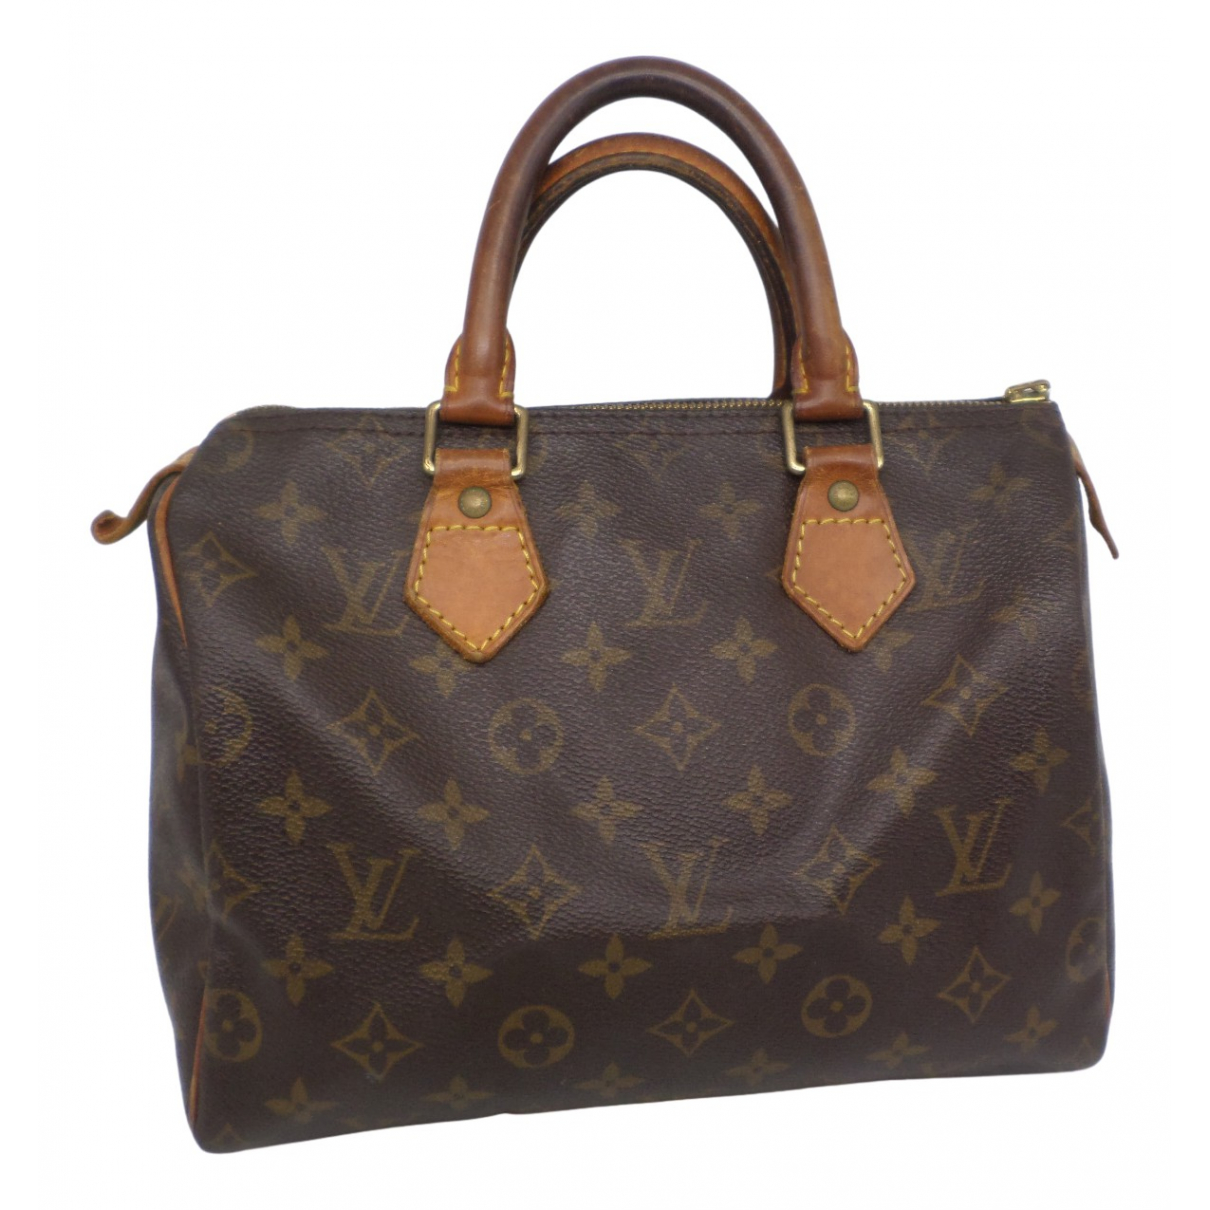 Louis Vuitton Speedy Handtasche in  Braun Leinen